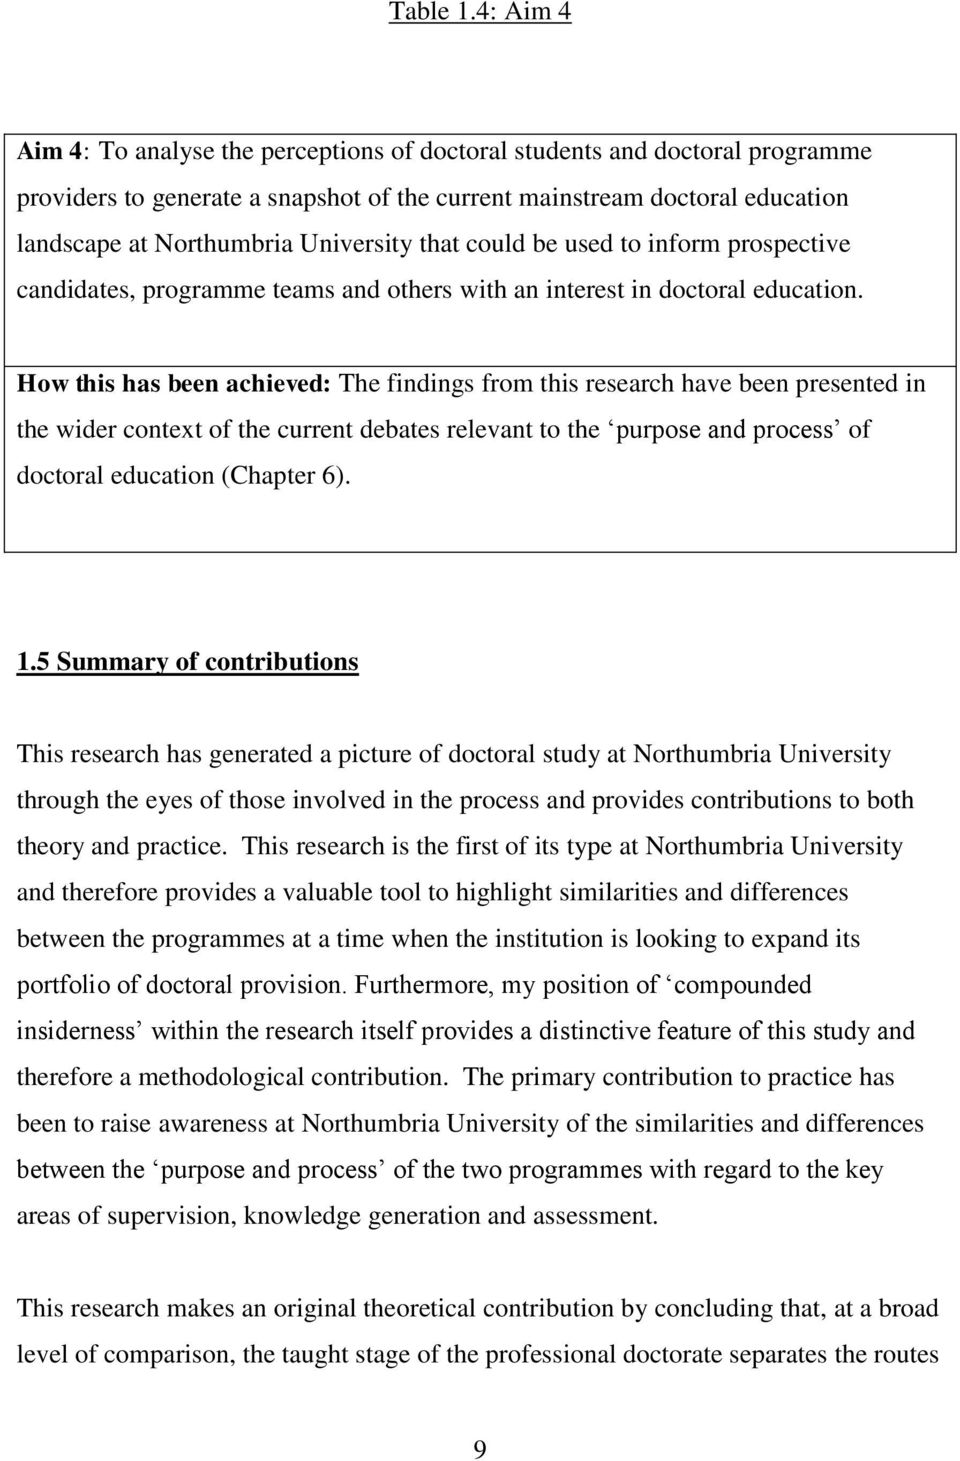 University that could be used to inform prospective candidates, programme teams and others with an interest in doctoral education.